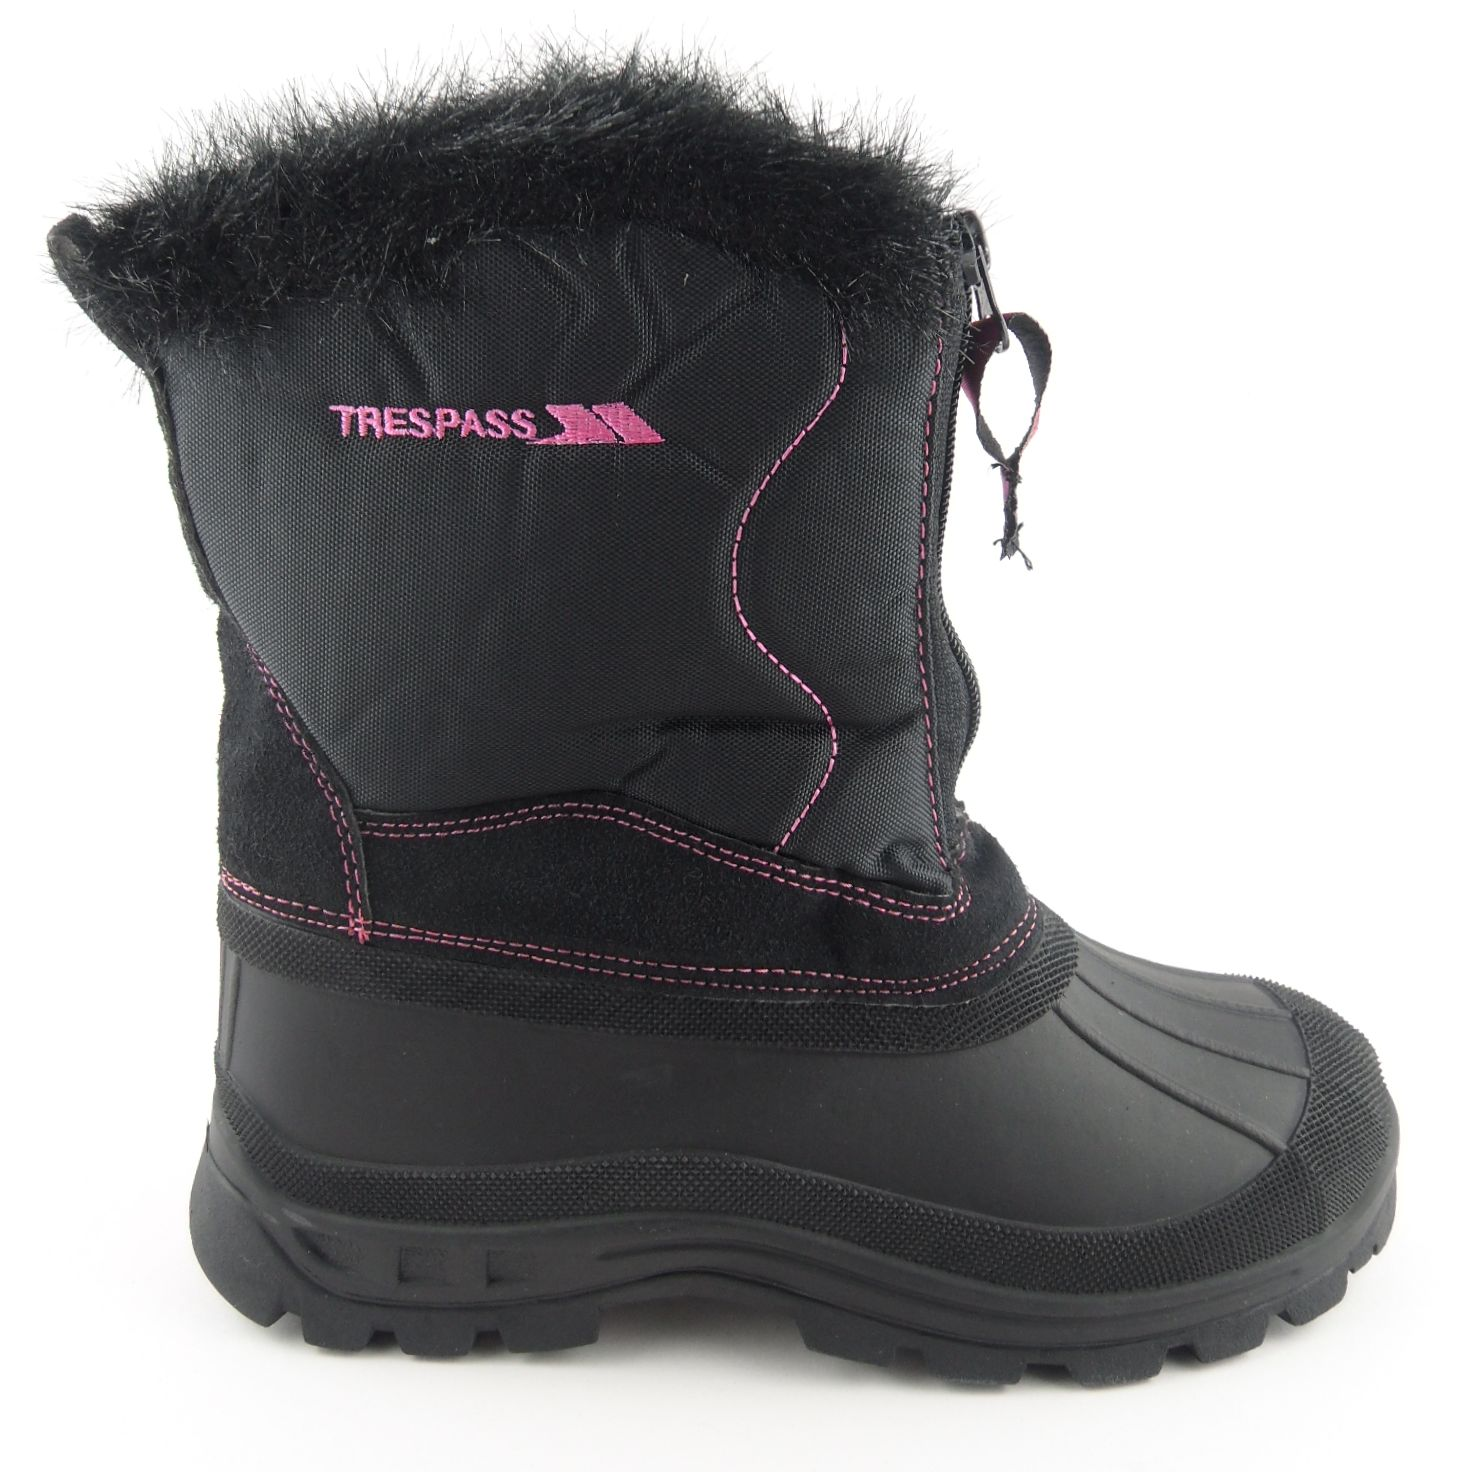 Ladies Waterproof Snow Boots Size 8 | Homewood Mountain Ski Resort